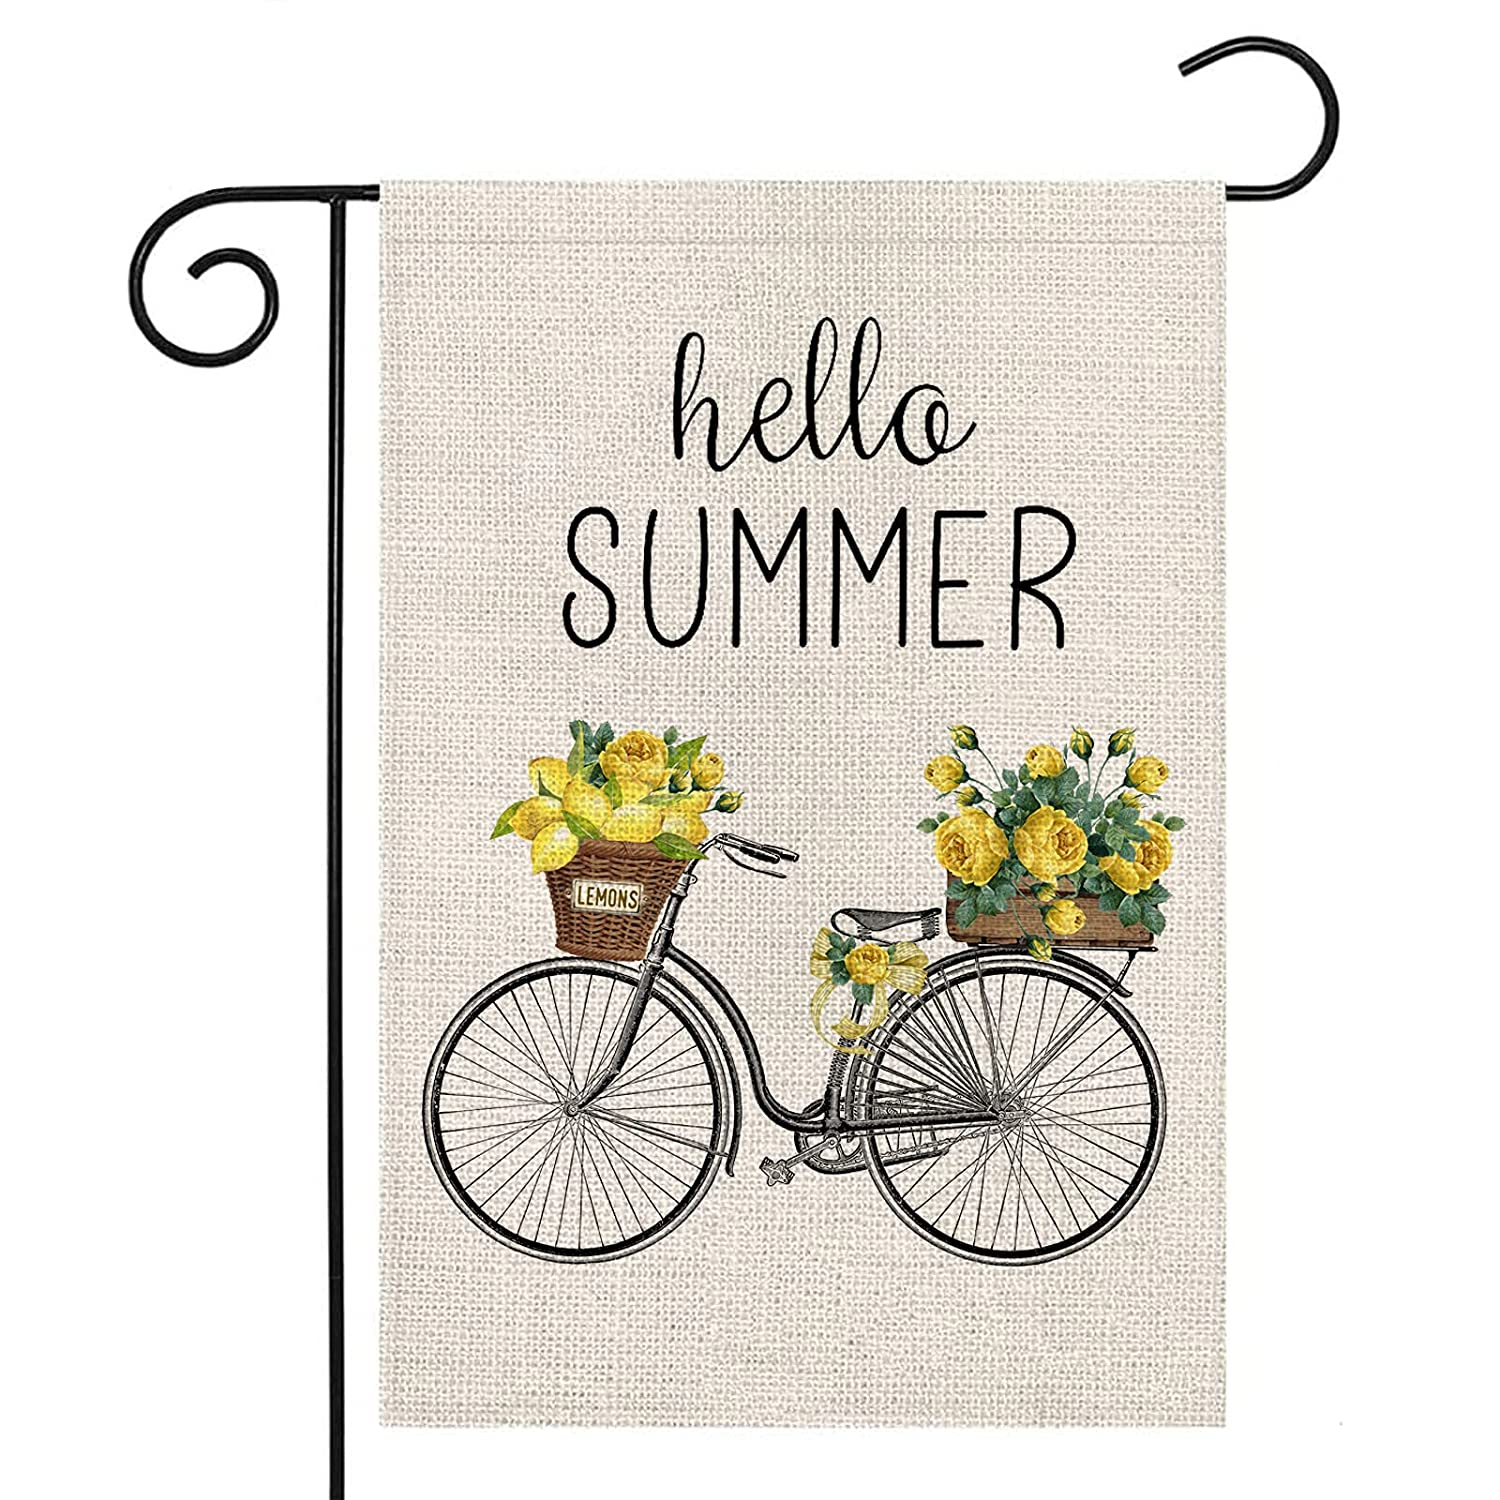 LARMOY Hello Summer Garden Flag for Outside,Bicycle with Lemons Flowers,12×18 Inch Vertical Double Sided,Welcome Summer Yard Flags for All Seasons,Small Seasonal Rustic Farmhouse Porch Outside Décor